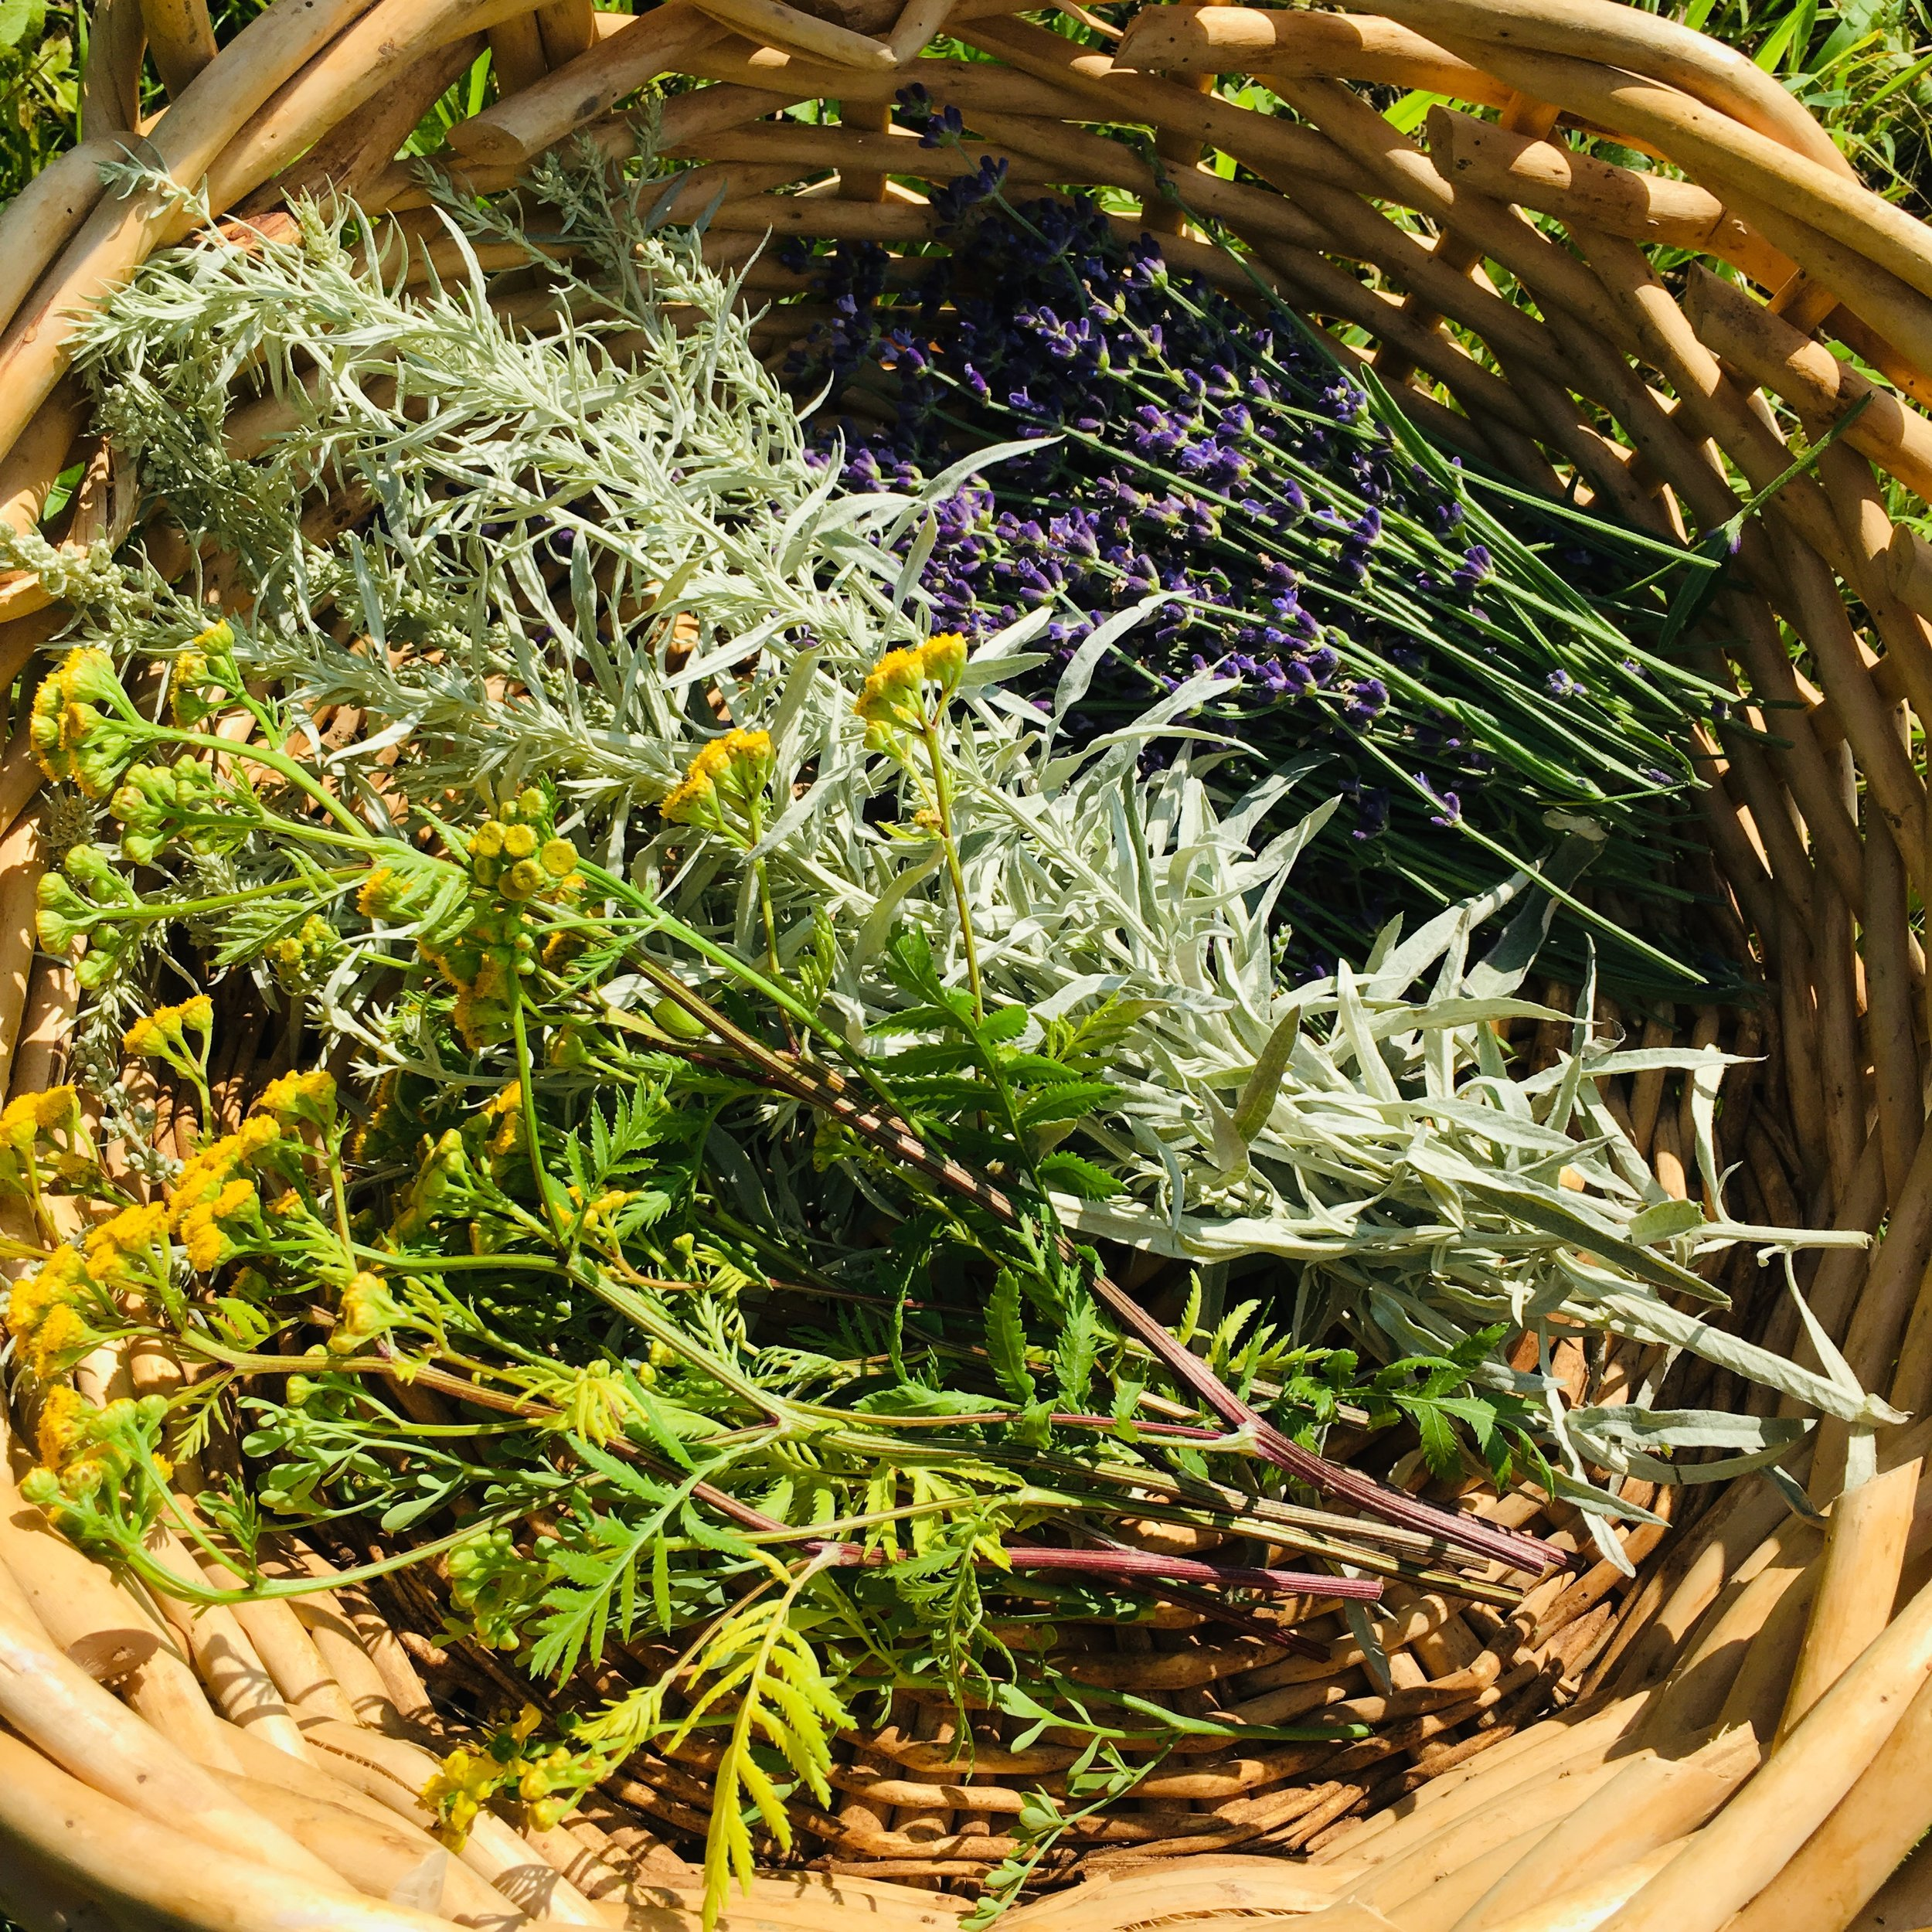 Tansy, Western Mugwort, and Lavender to hang in our home.